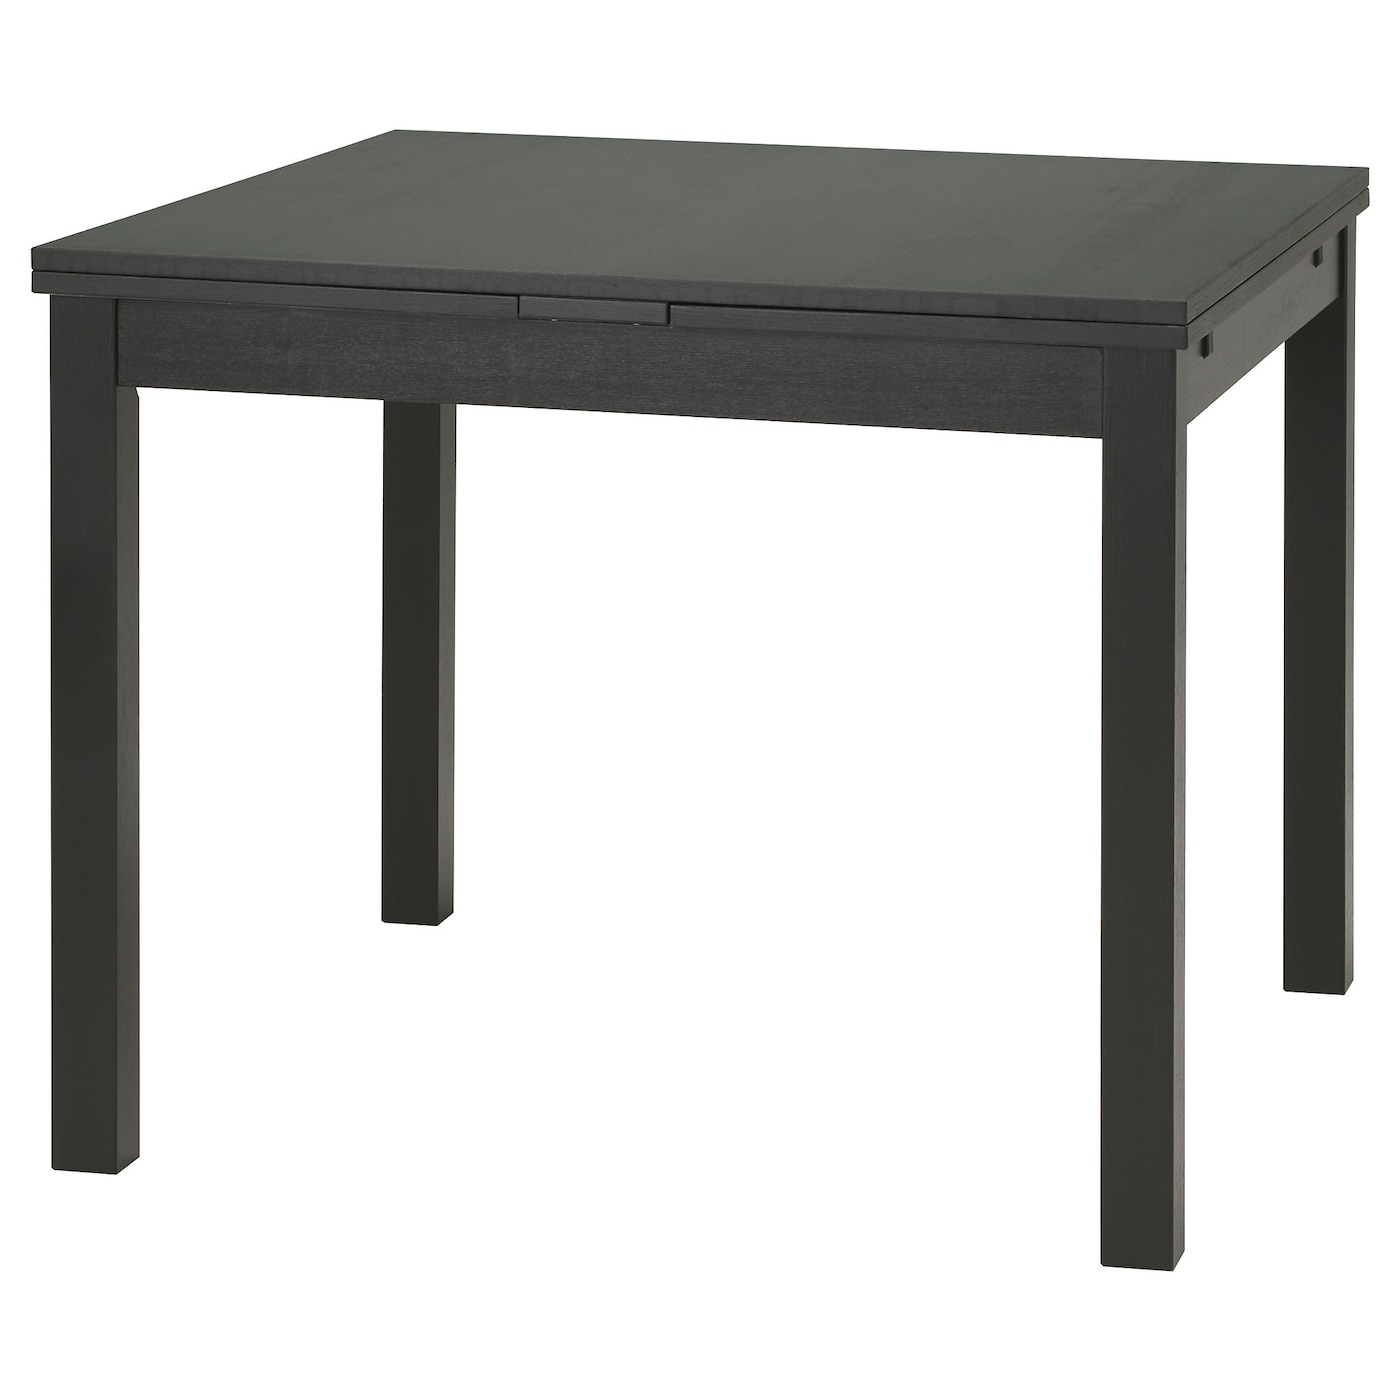 Bjursta extendable table brown black 90 129 168x90 cm ikea for Table rectangulaire avec rallonge